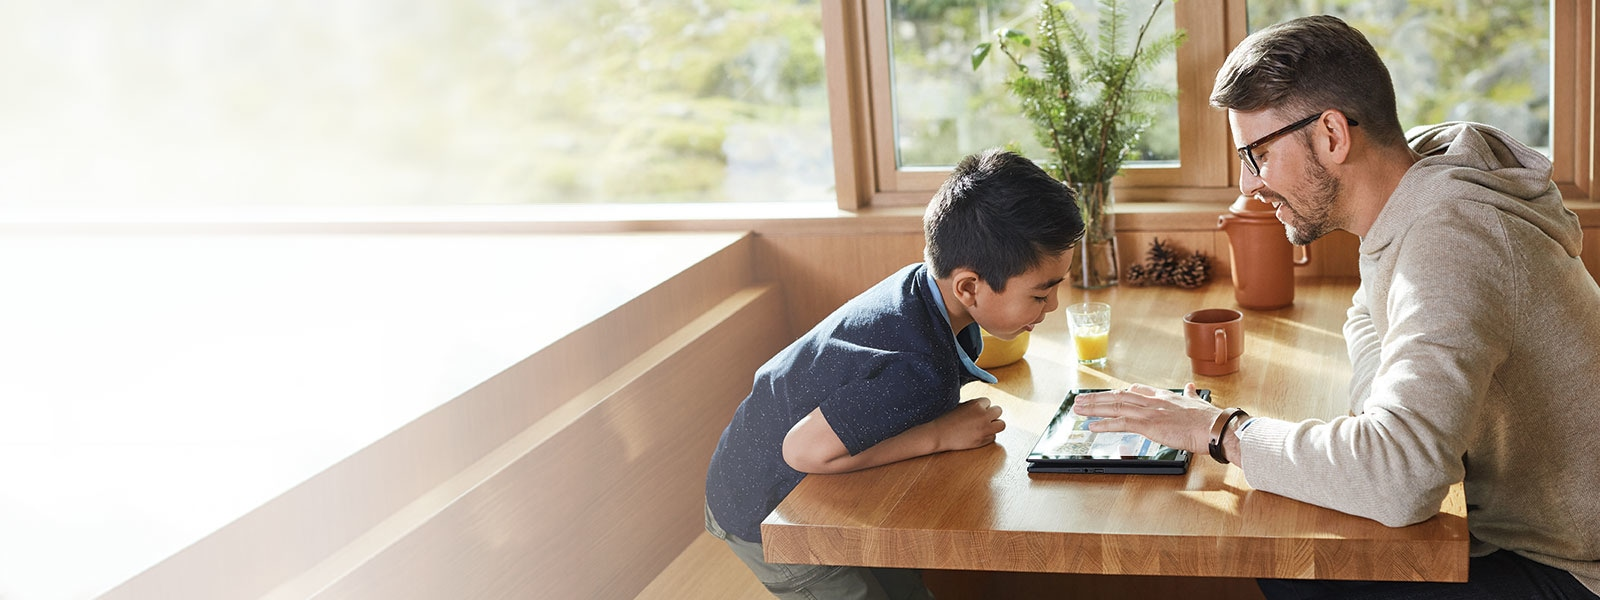 A father and son sit at the breakfast table across from each other looking at a Windows 10 PC